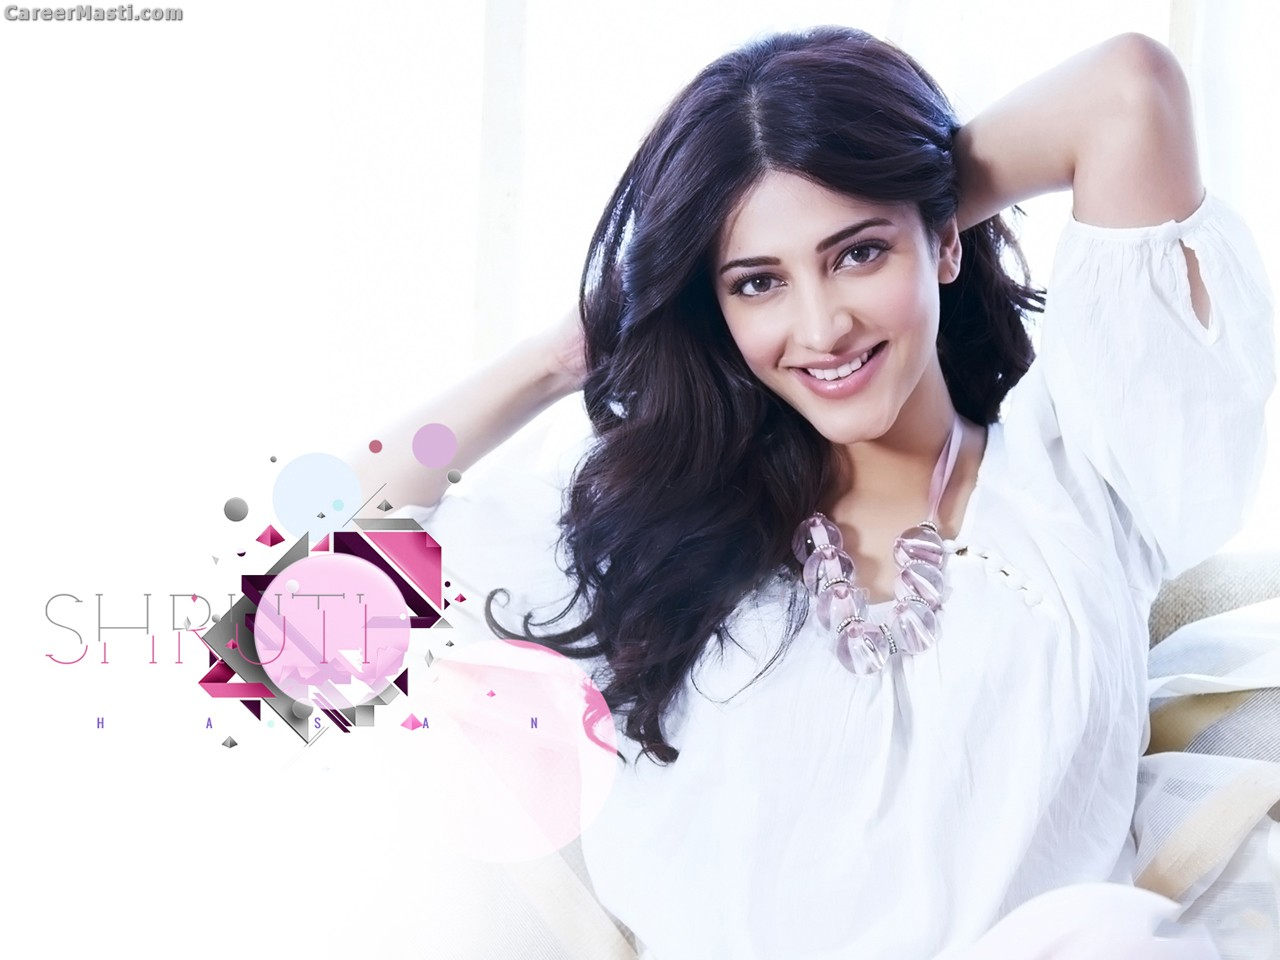 webparx images shruti hassan hd wallpaper and background photos